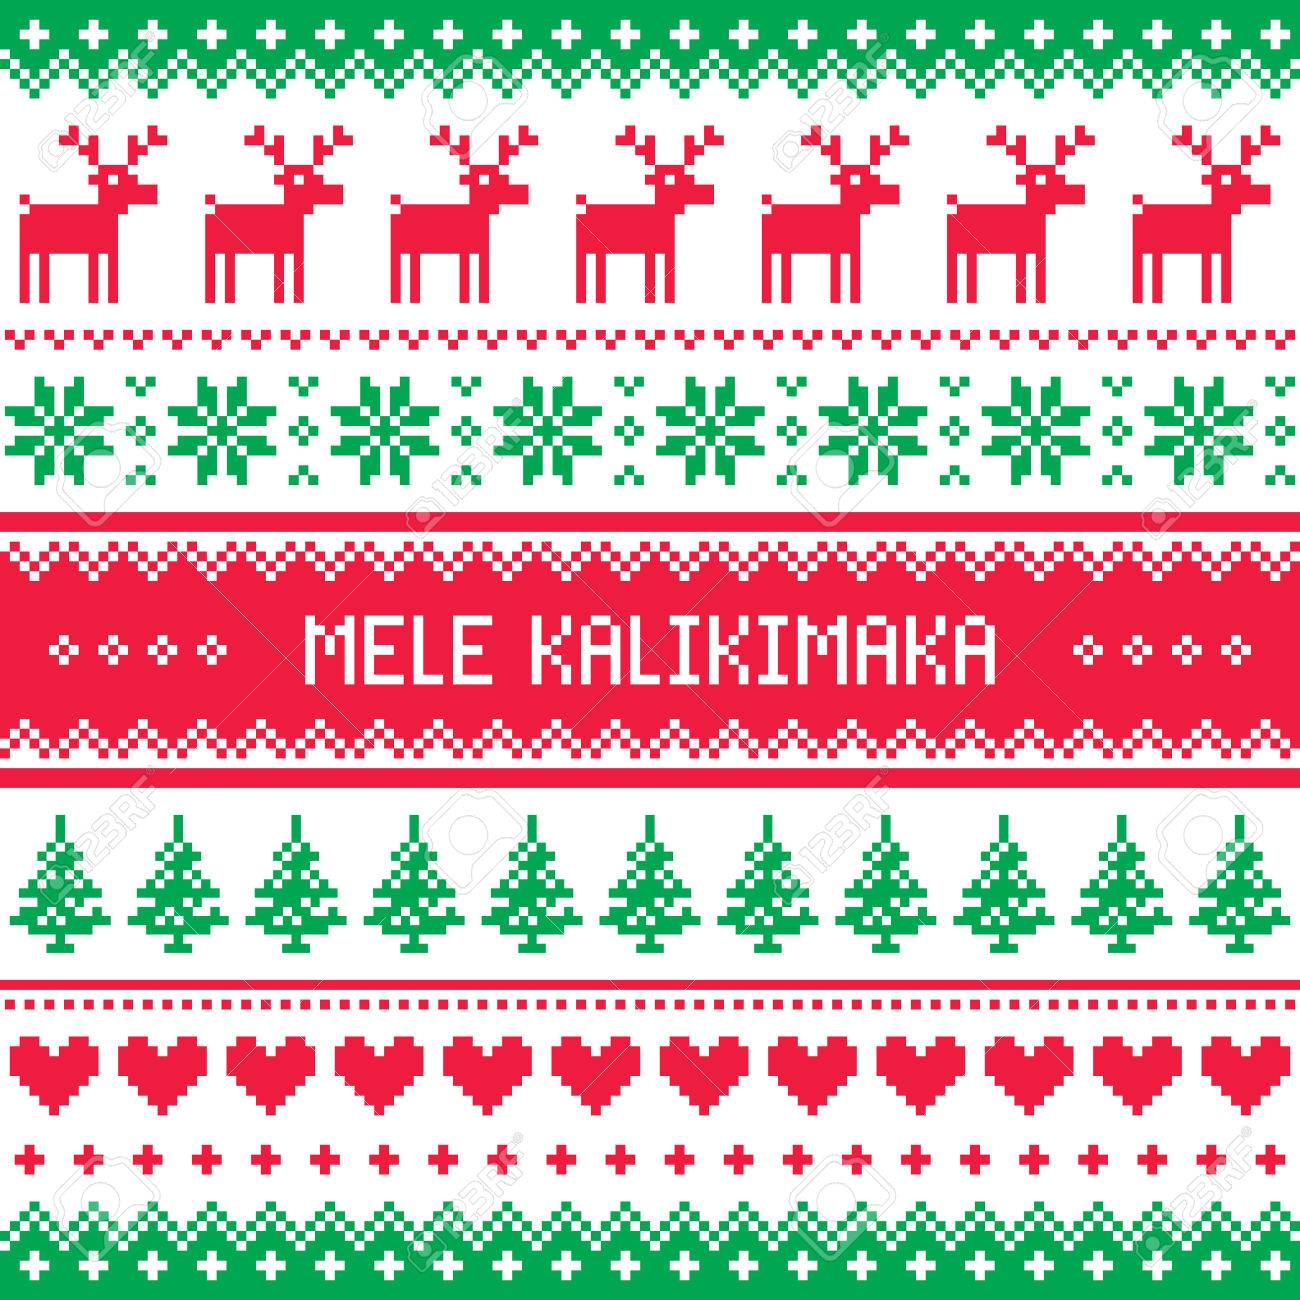 Mele Kalikimaka - Merry Christmas in Hawaiian greetings card,..